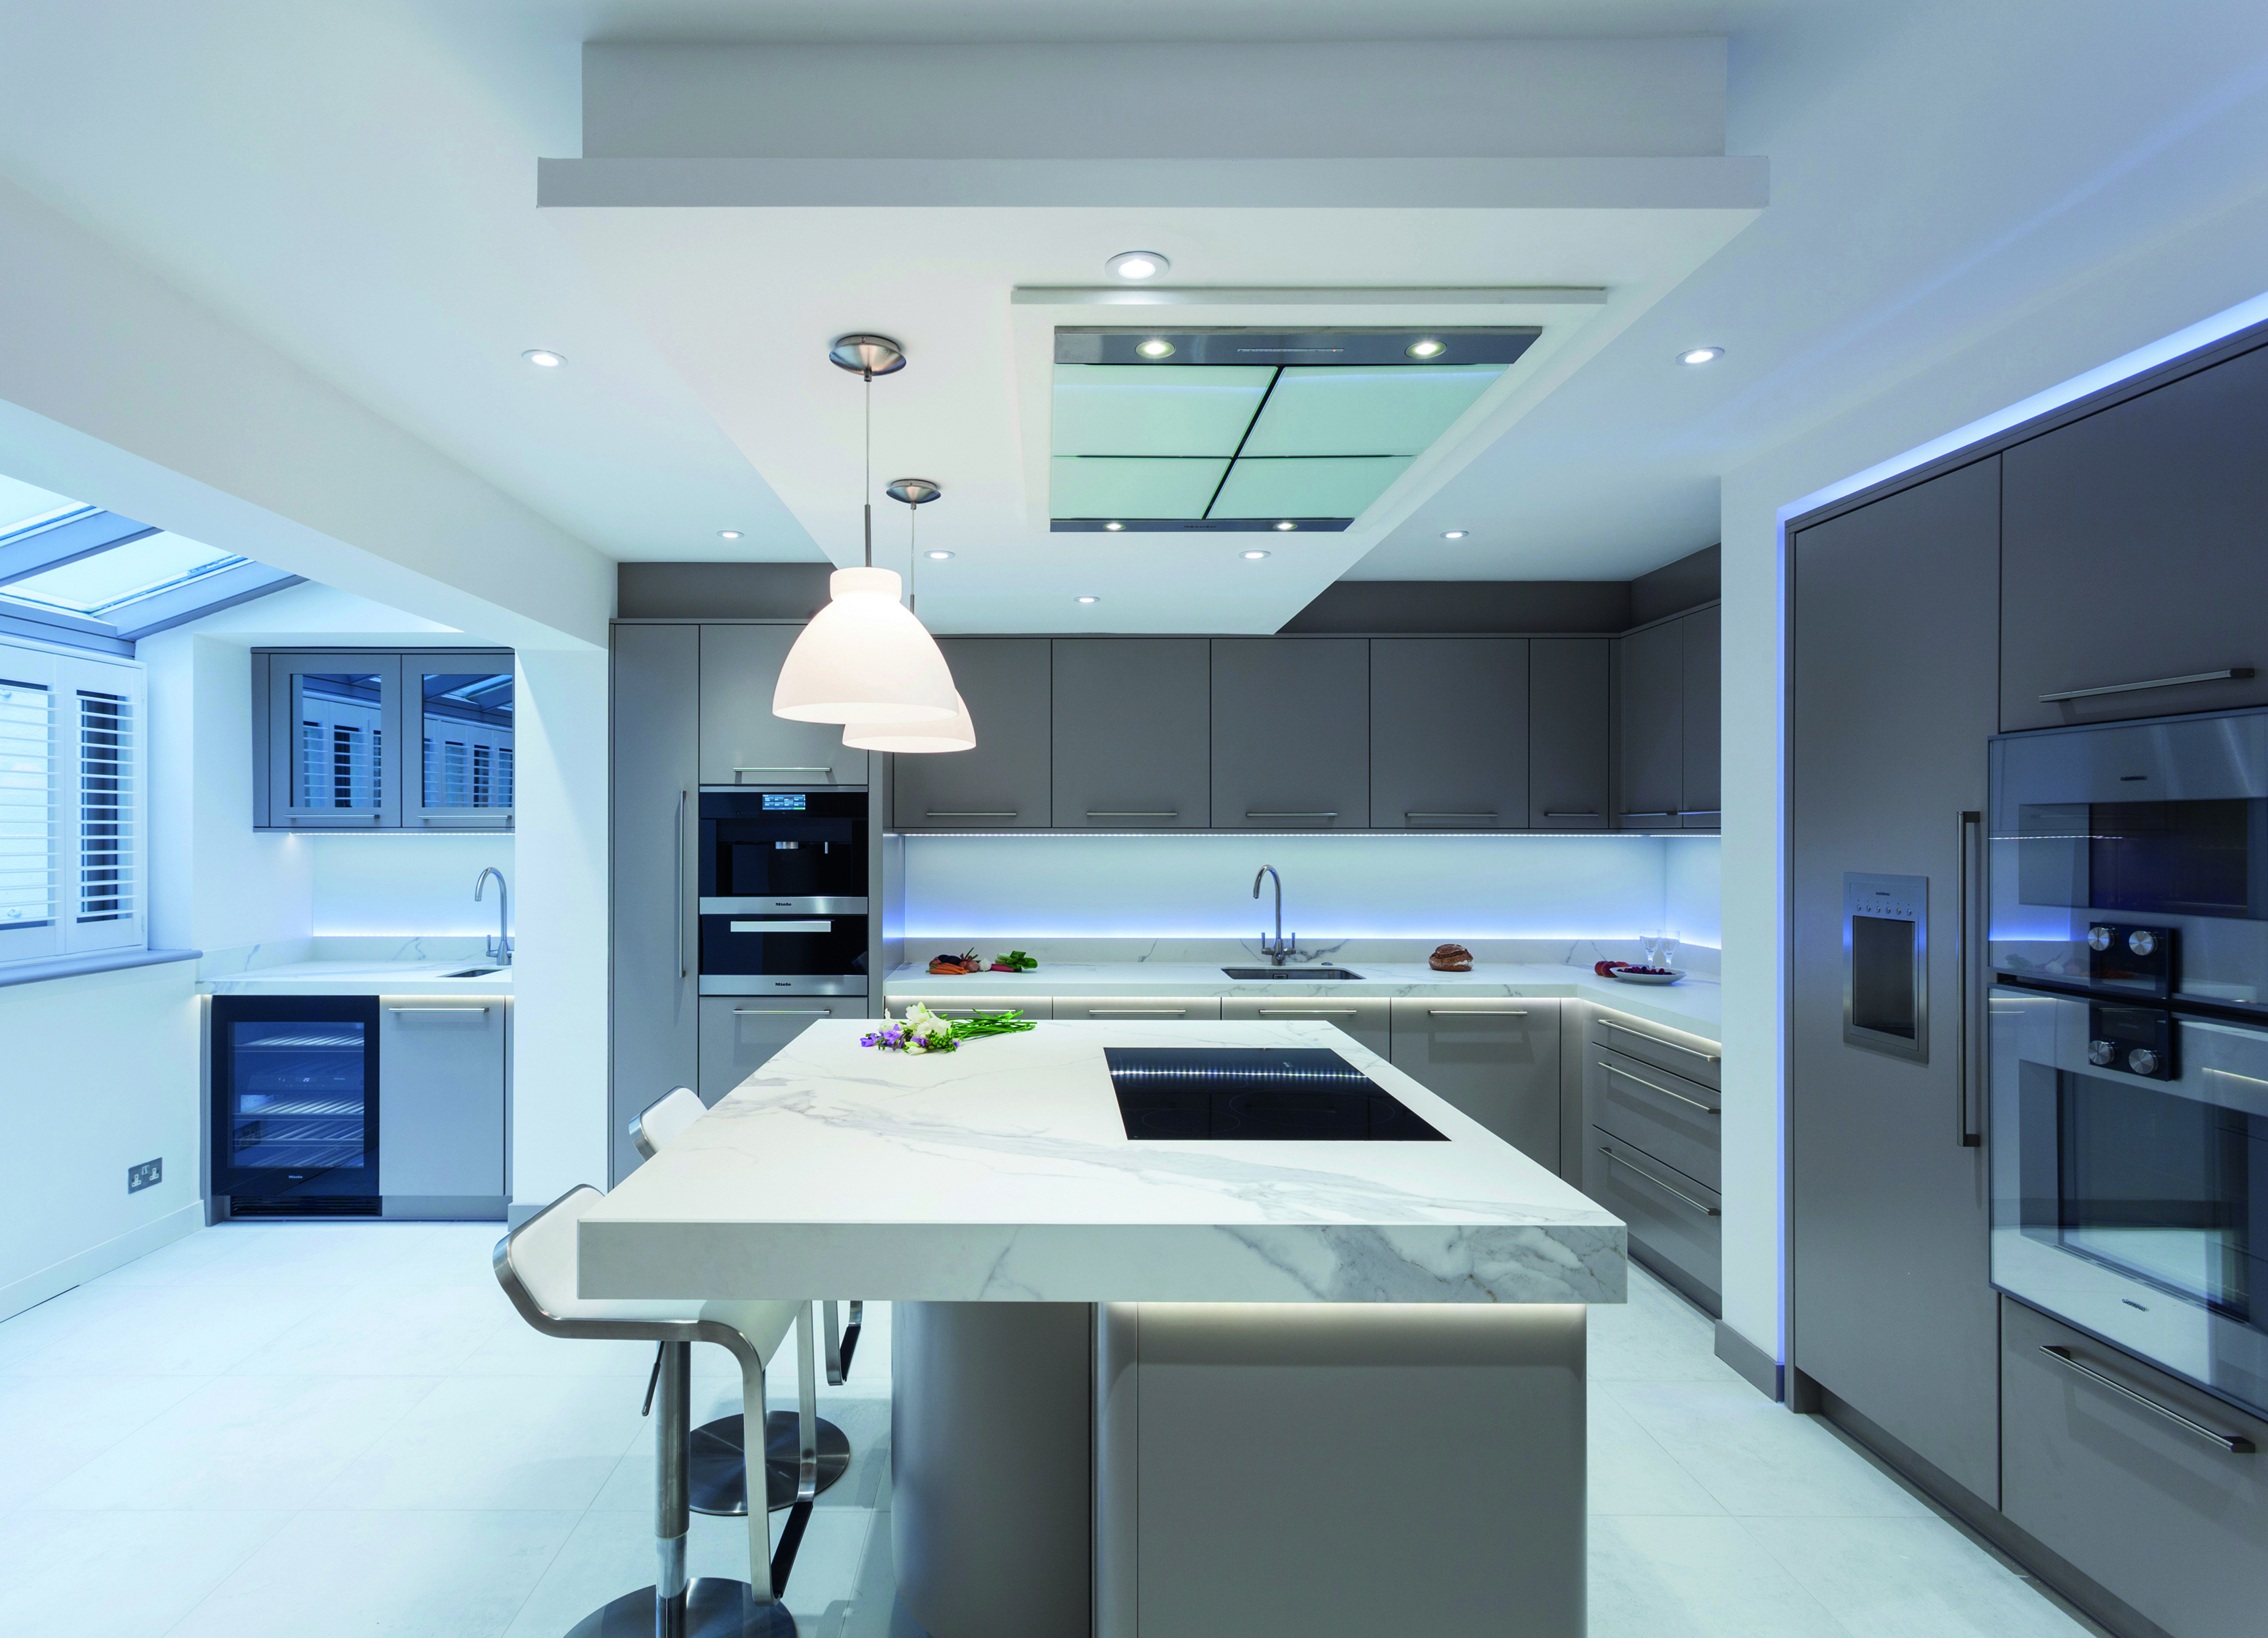 Stoneham Kitchens stoneham plc royal warrant holders association